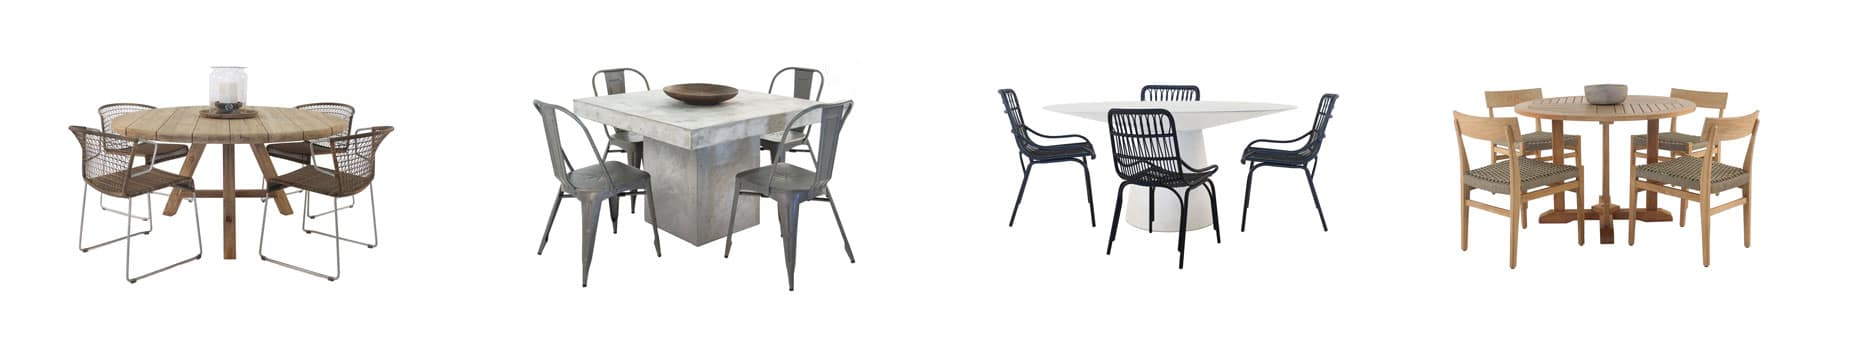 Outdoor Dining Sets For Four People